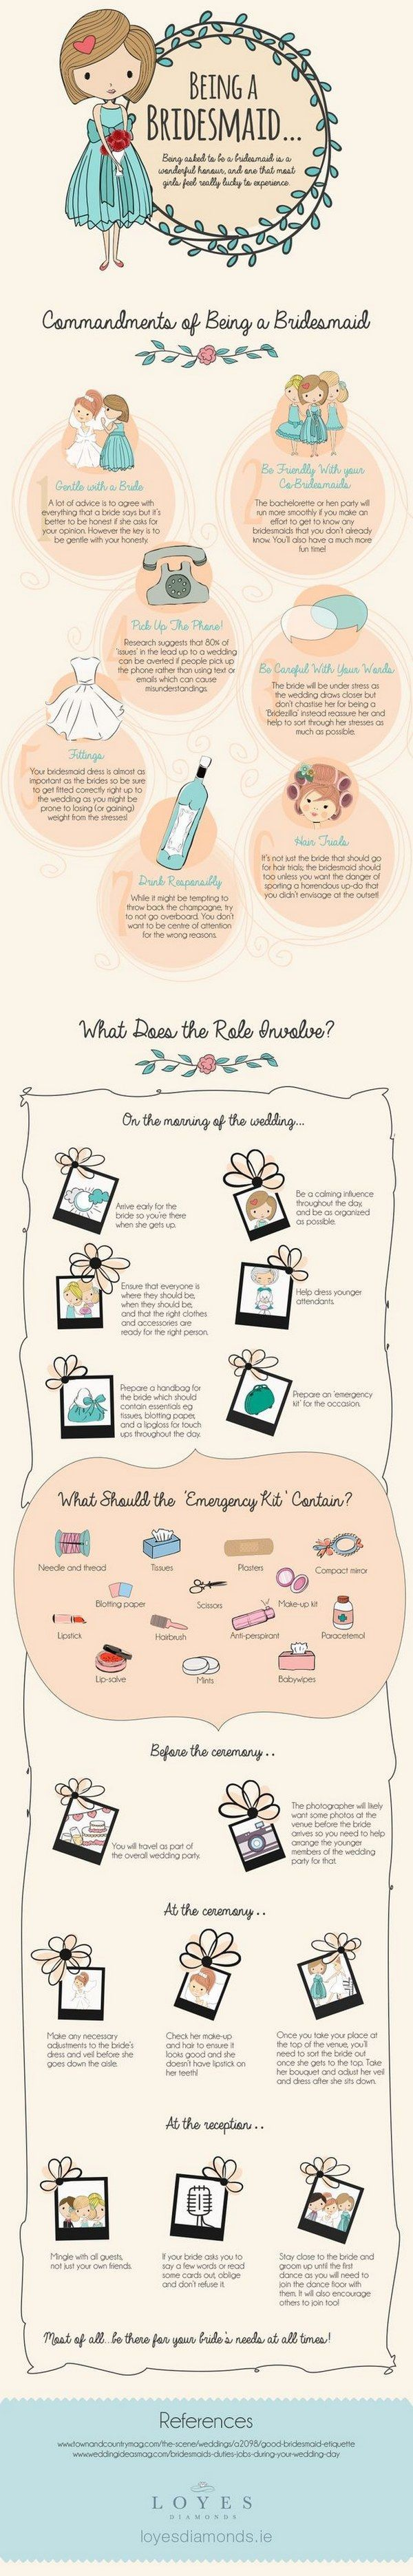 A Guide To Being A Good Bridesmaid Infographic / http://www.deerpearlflowers.com/wedding-planning-infographics/2/